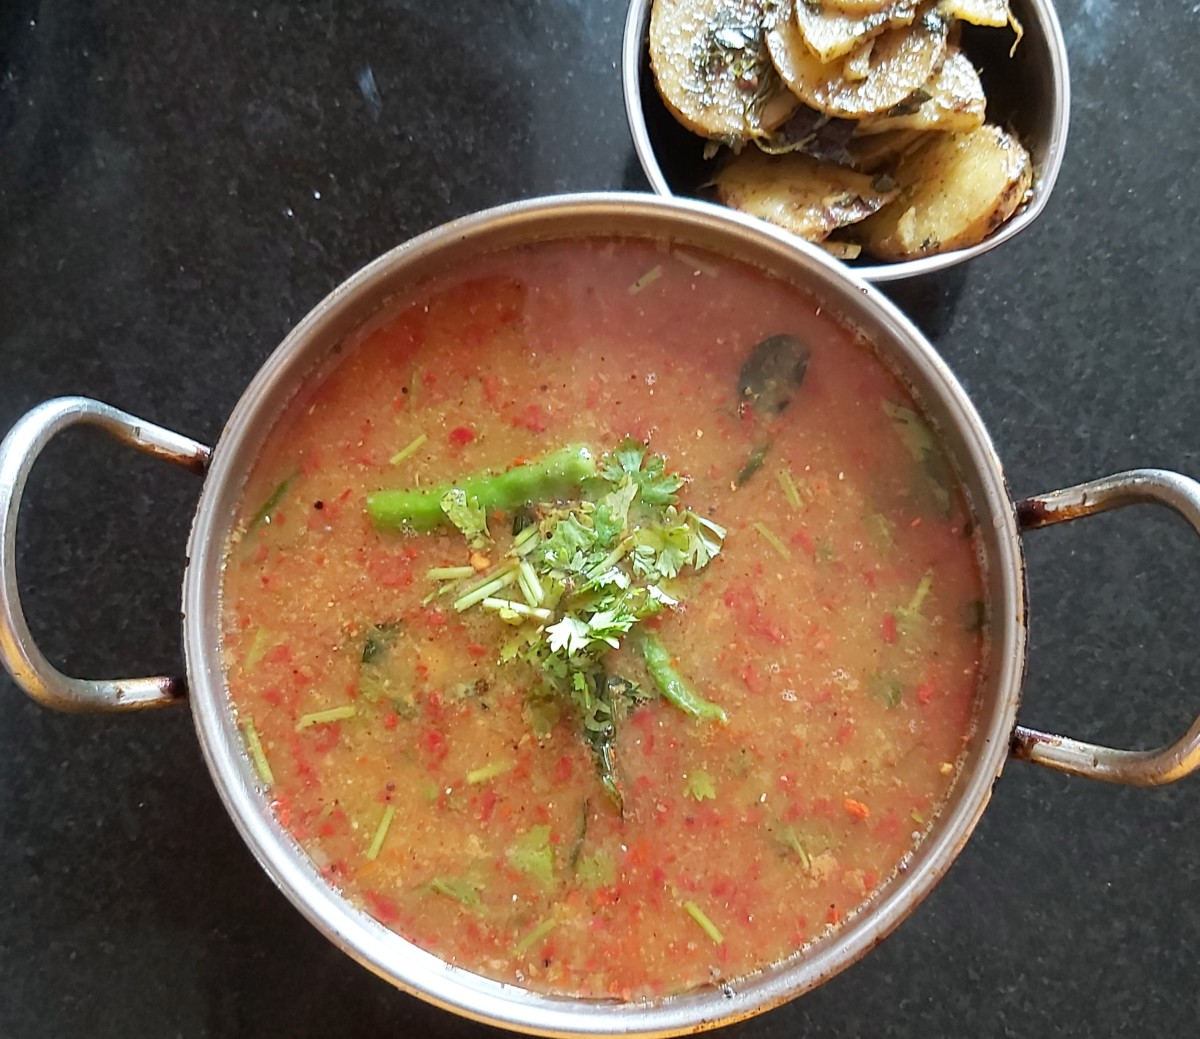 This instant rasam gets its sourness from tamarind rather than tomato.